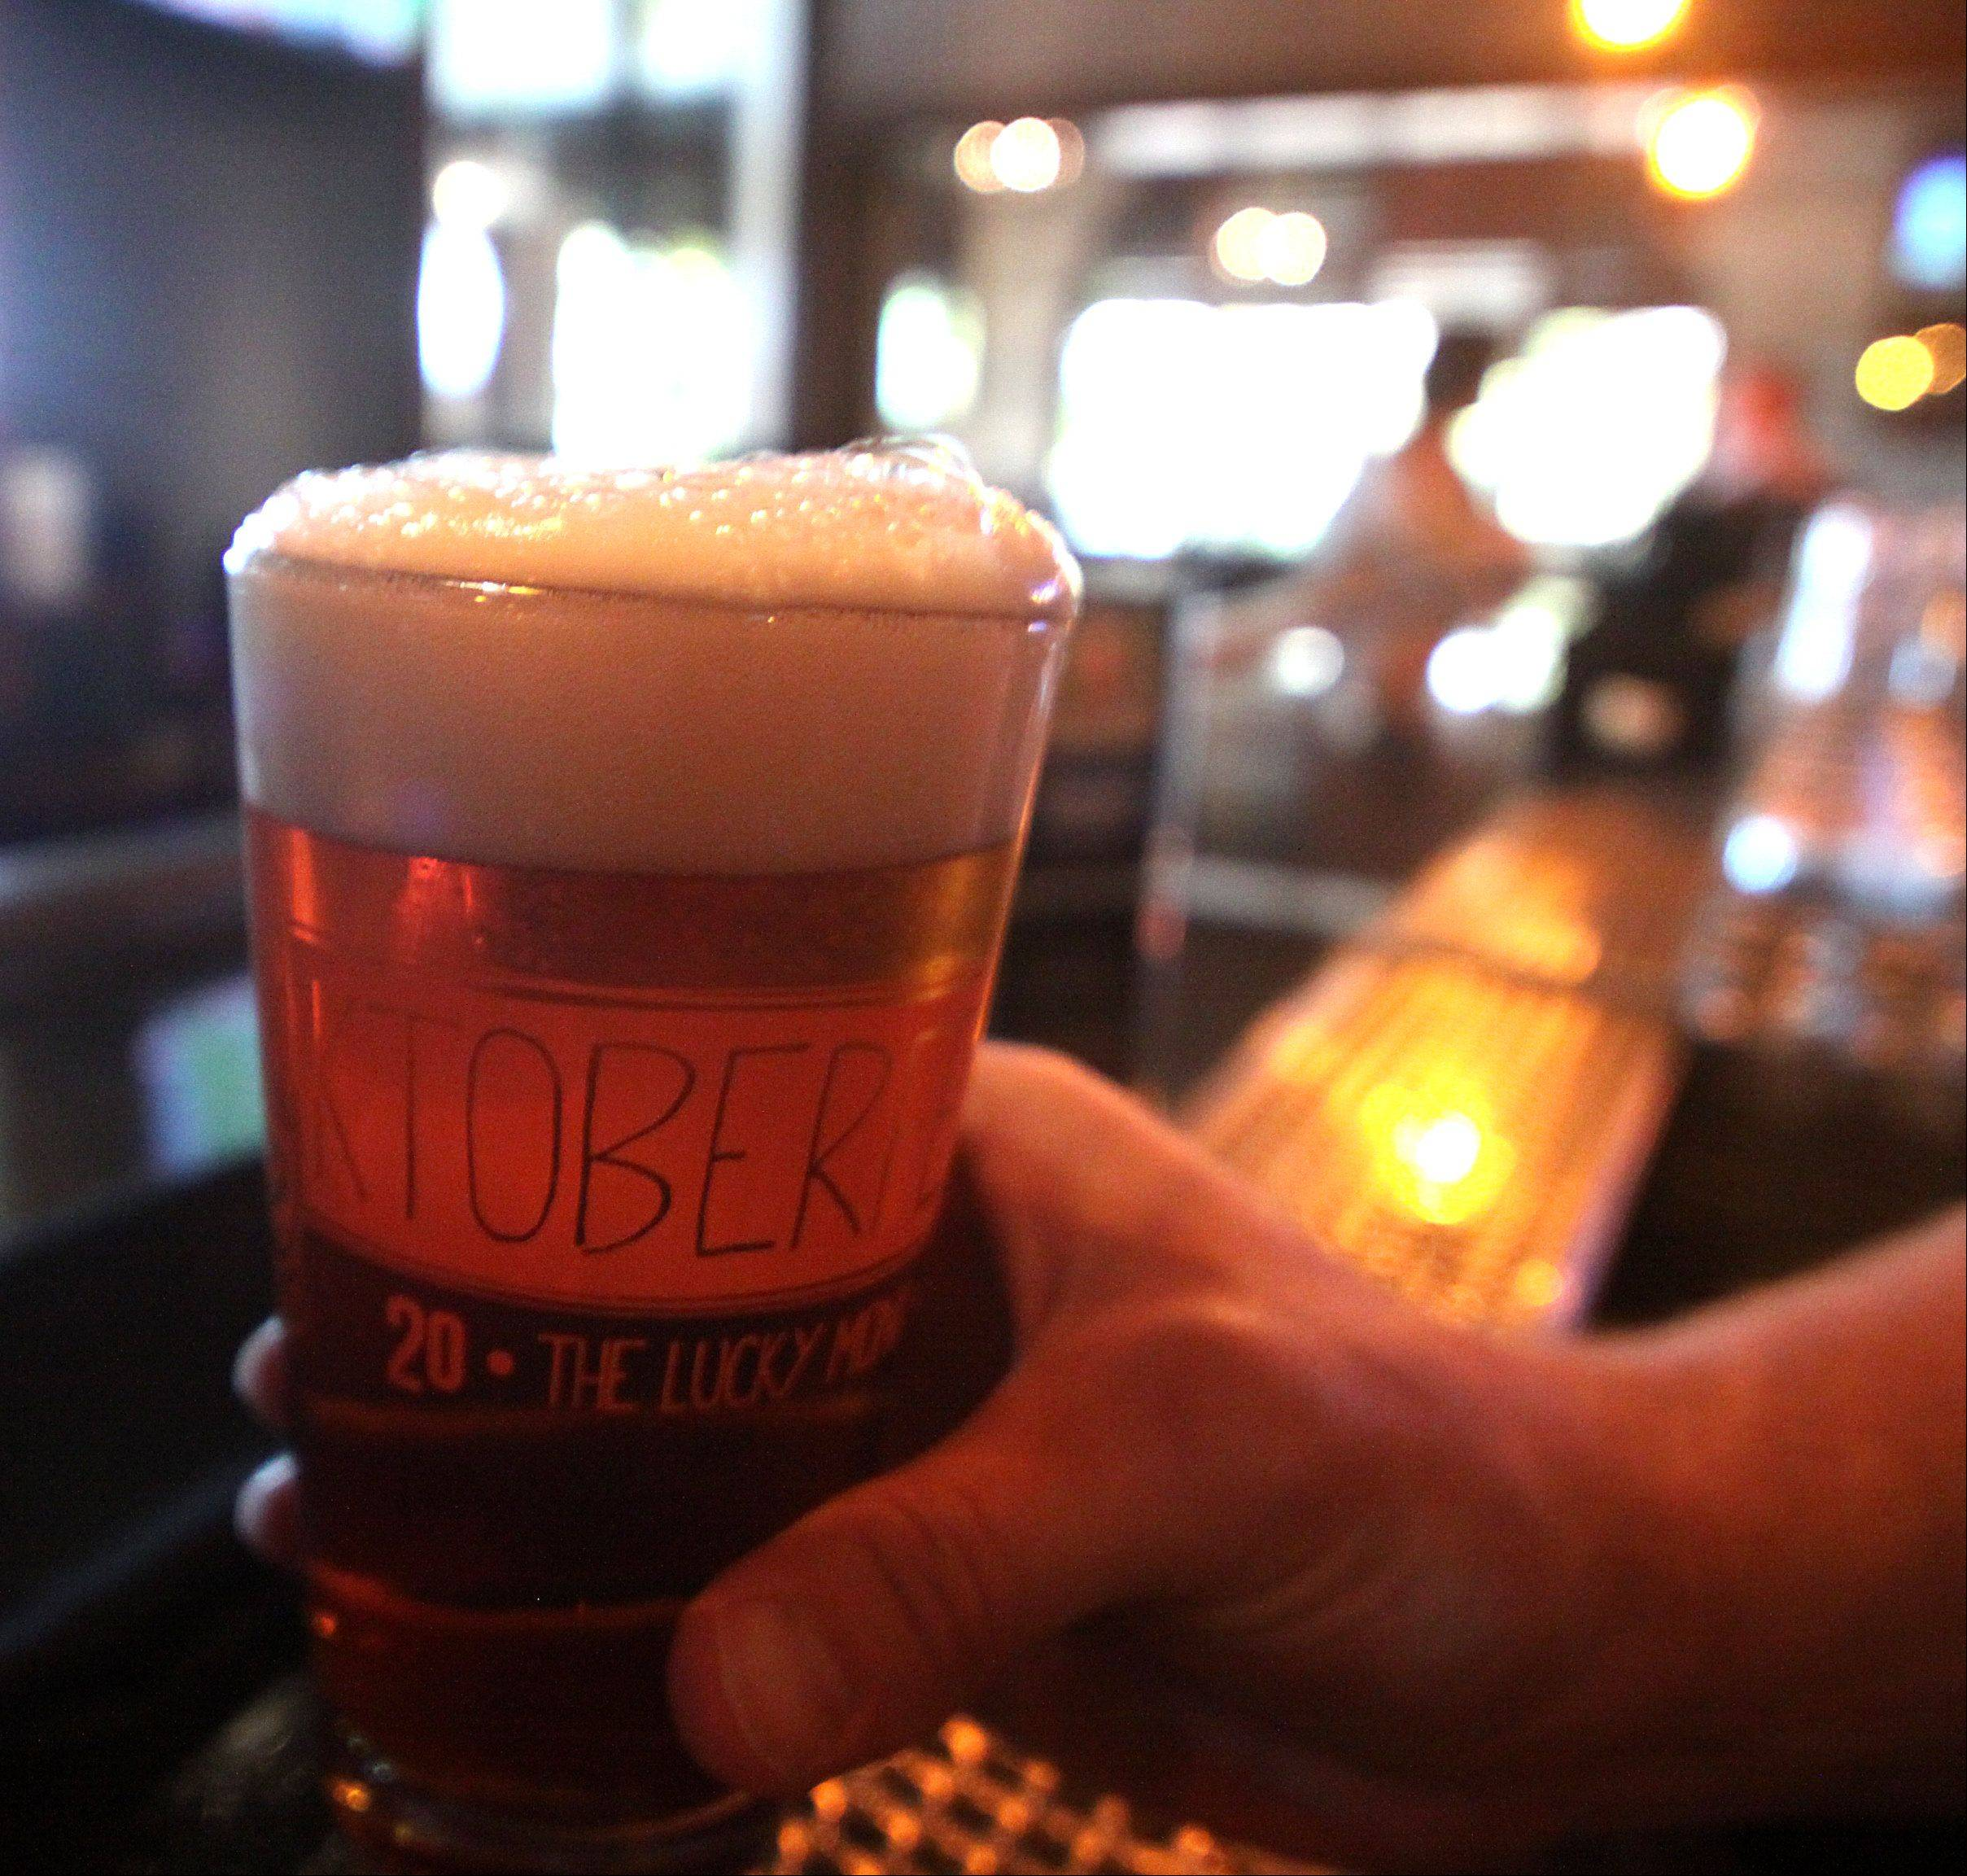 In a nod to the beer's origins, the Oktoberfest at The Lucky Monk in South Barrington is brewed with malt from Munich.